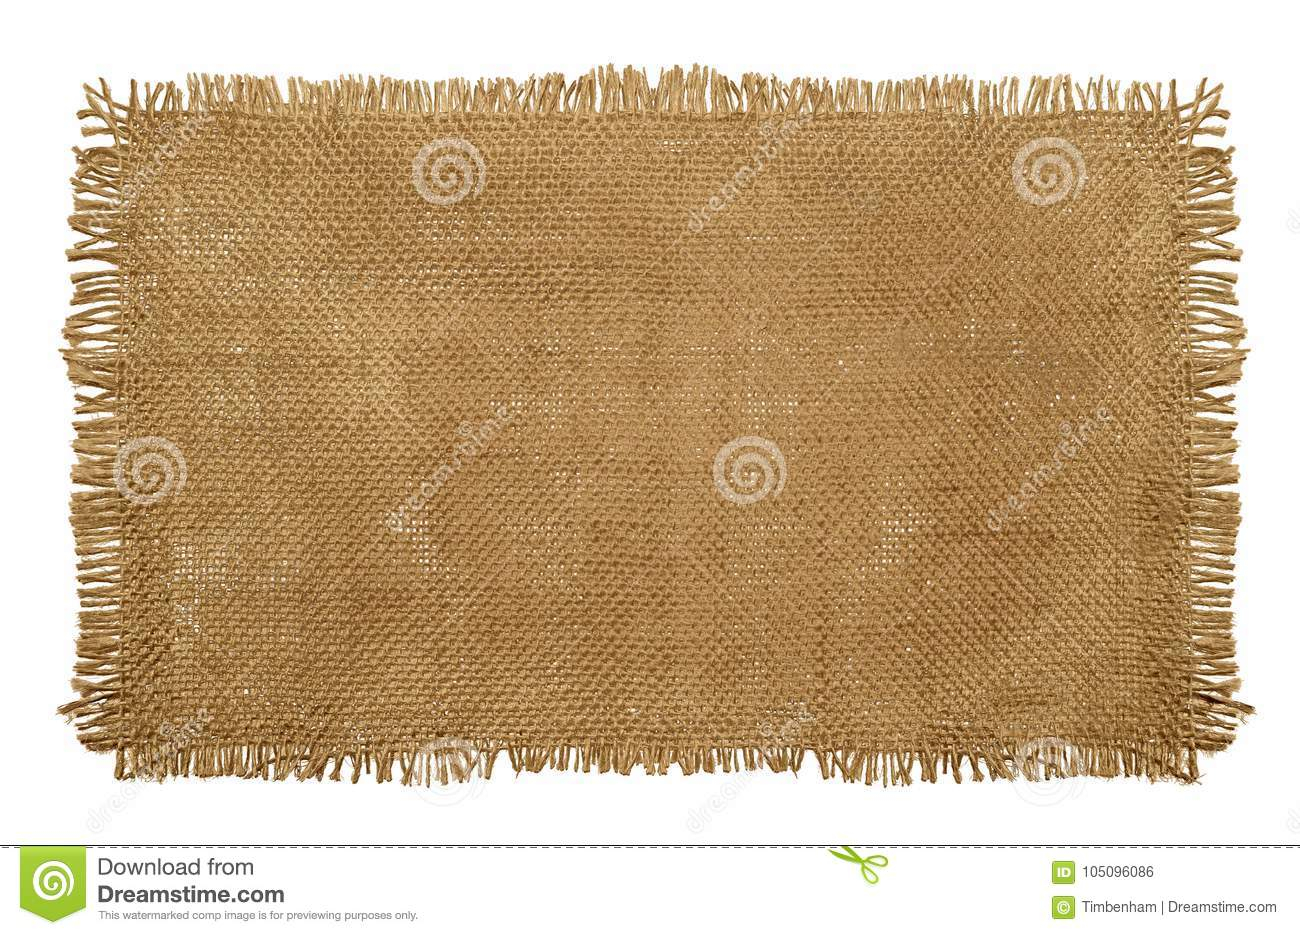 Burlap Hessian Sack material with worn frayed edges isolated on